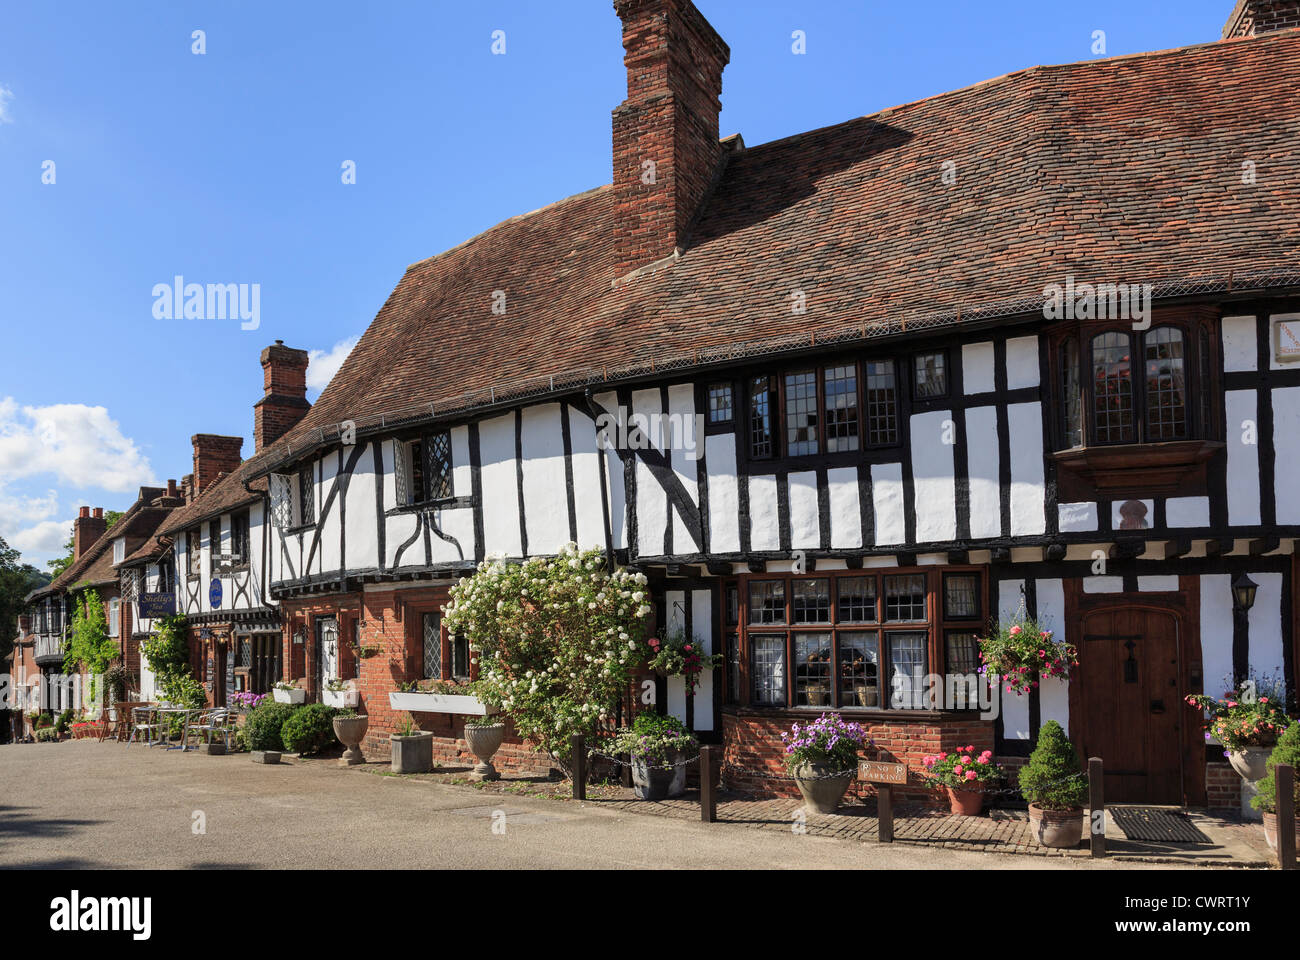 Row of timber-framed Tudor period houses in picturesque medieval Chilham village square, Chilham, Kent, England, - Stock Image